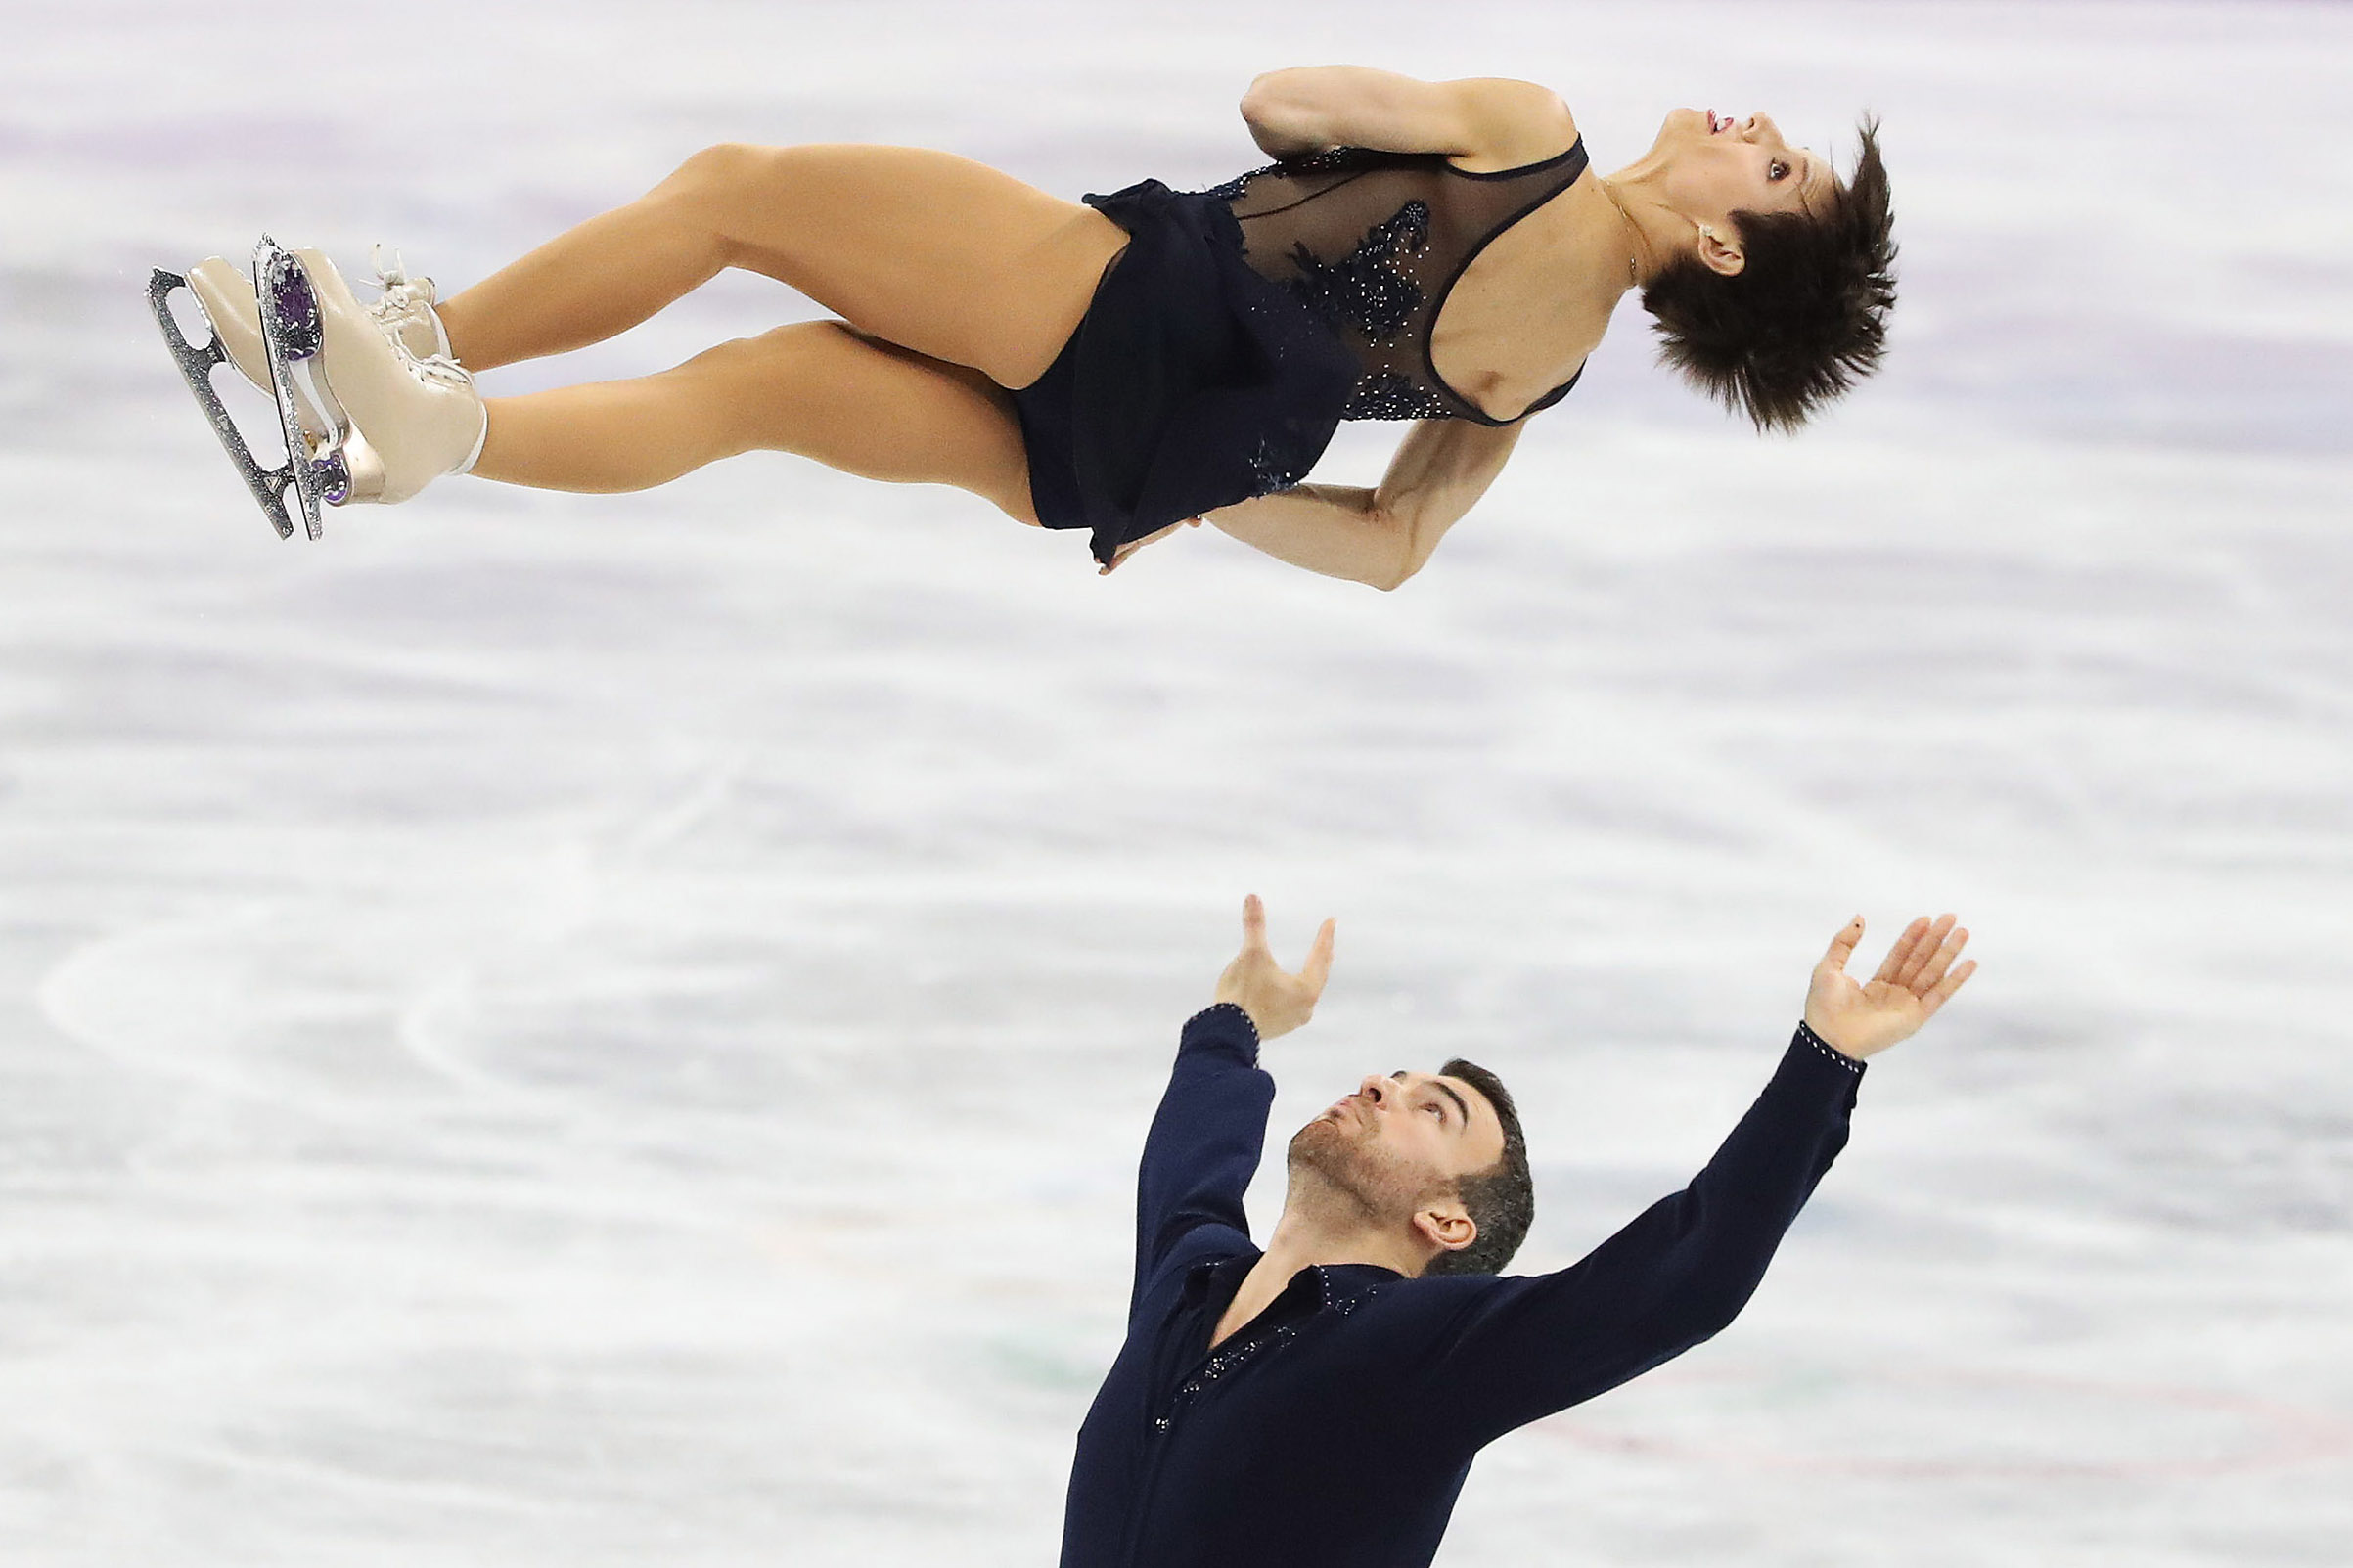 Meagan Duhamel and Eric Radford of Canada perform in the Figure Skating Pairs Short program at the PyeongChang 2018 Winter Olympics at the Gangneung Ice Arena in Gangneung in Pyeongchang in South Korea on Feb. 14, 2018.